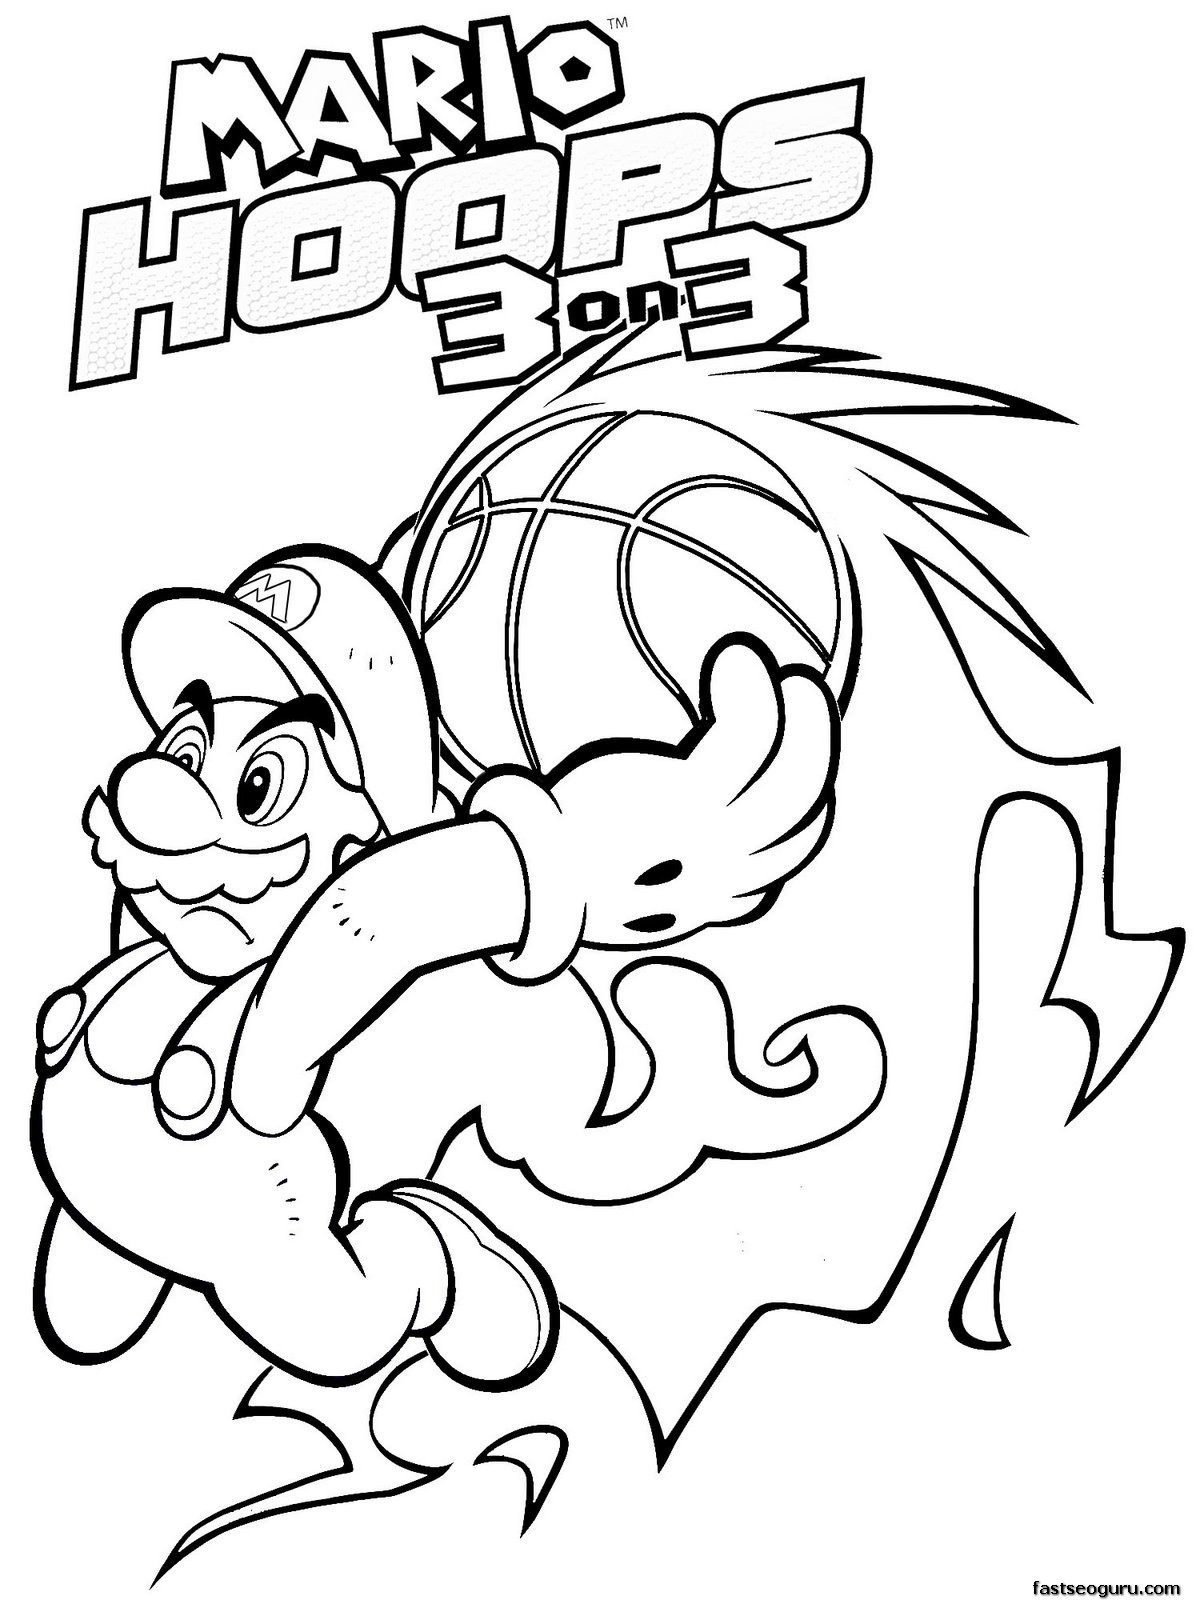 Printable Super Mario World Coloring Pages